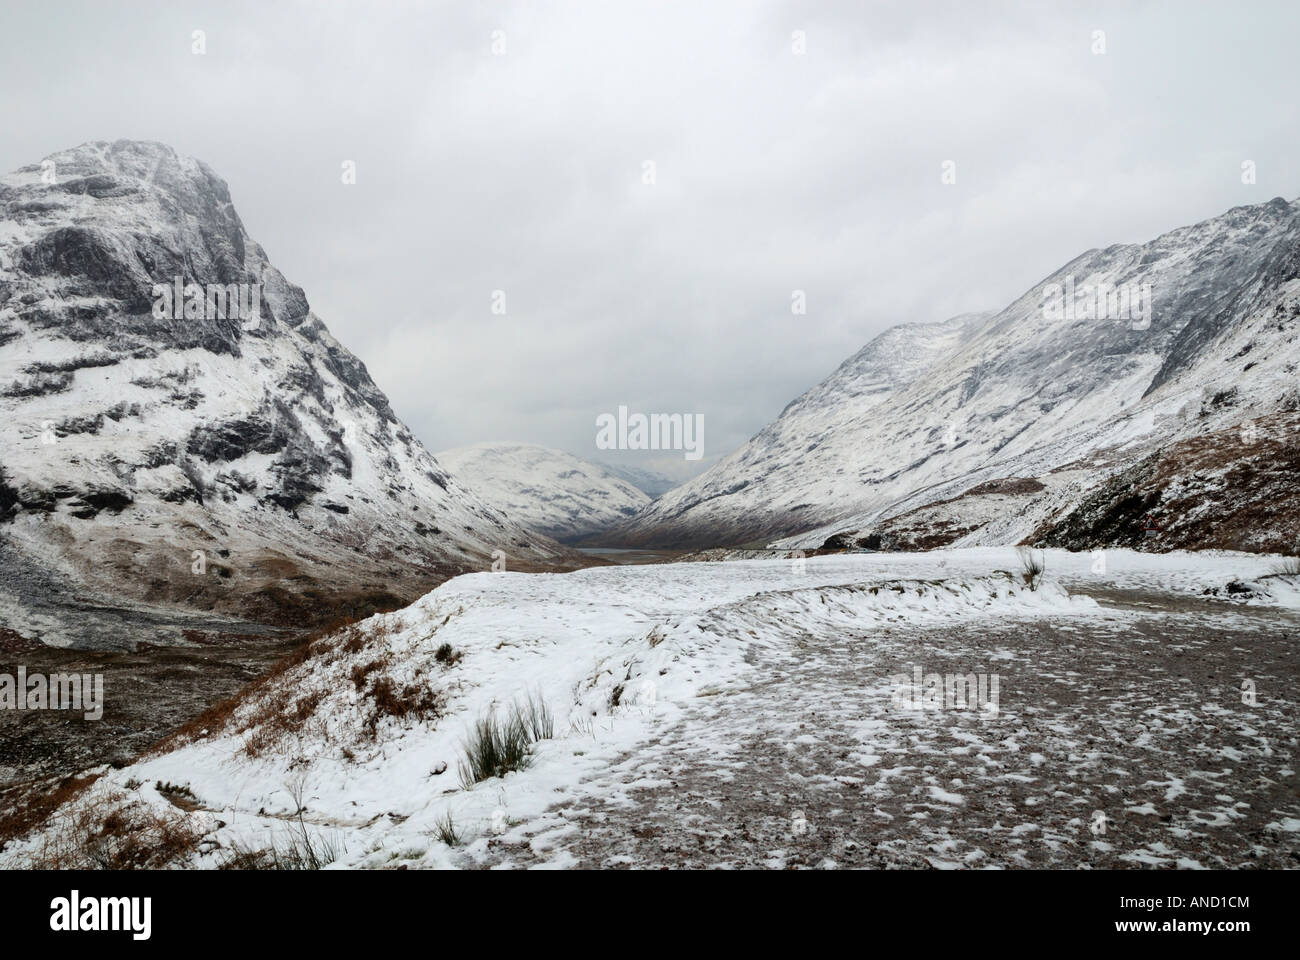 Glencoe in the depths of winter with a snowstorm in progress. - Stock Image